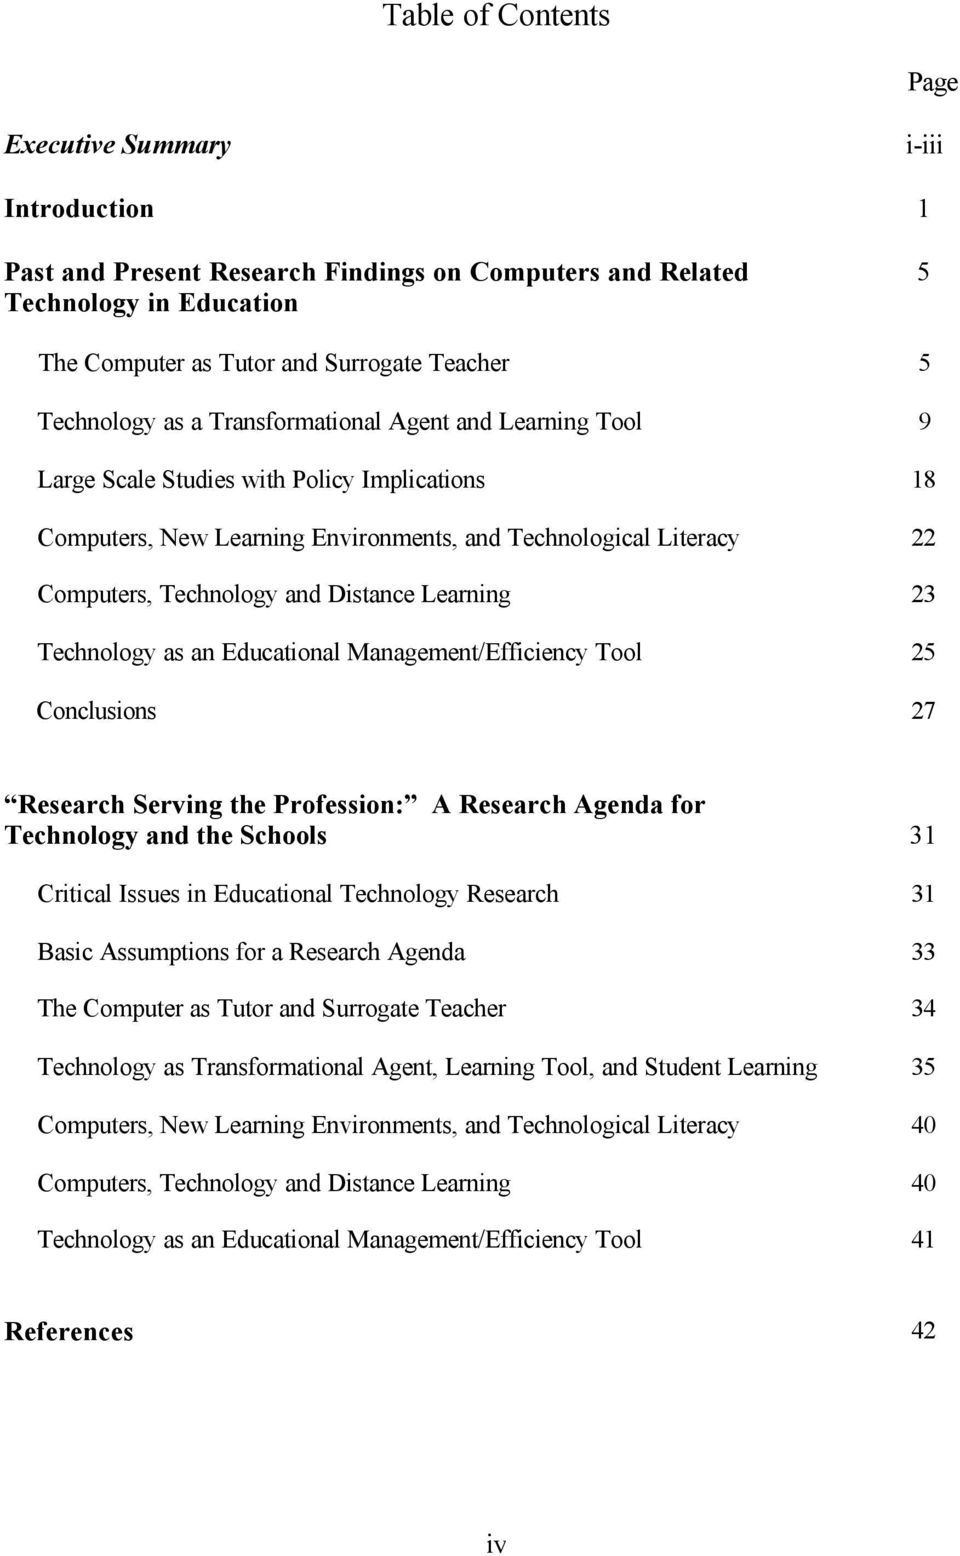 Distance Learning Technology as an Educational Management/Efficiency Tool Conclusions 5 5 9 18 22 23 25 27 Research Serving the Profession: A Research Agenda for Technology and the Schools Critical